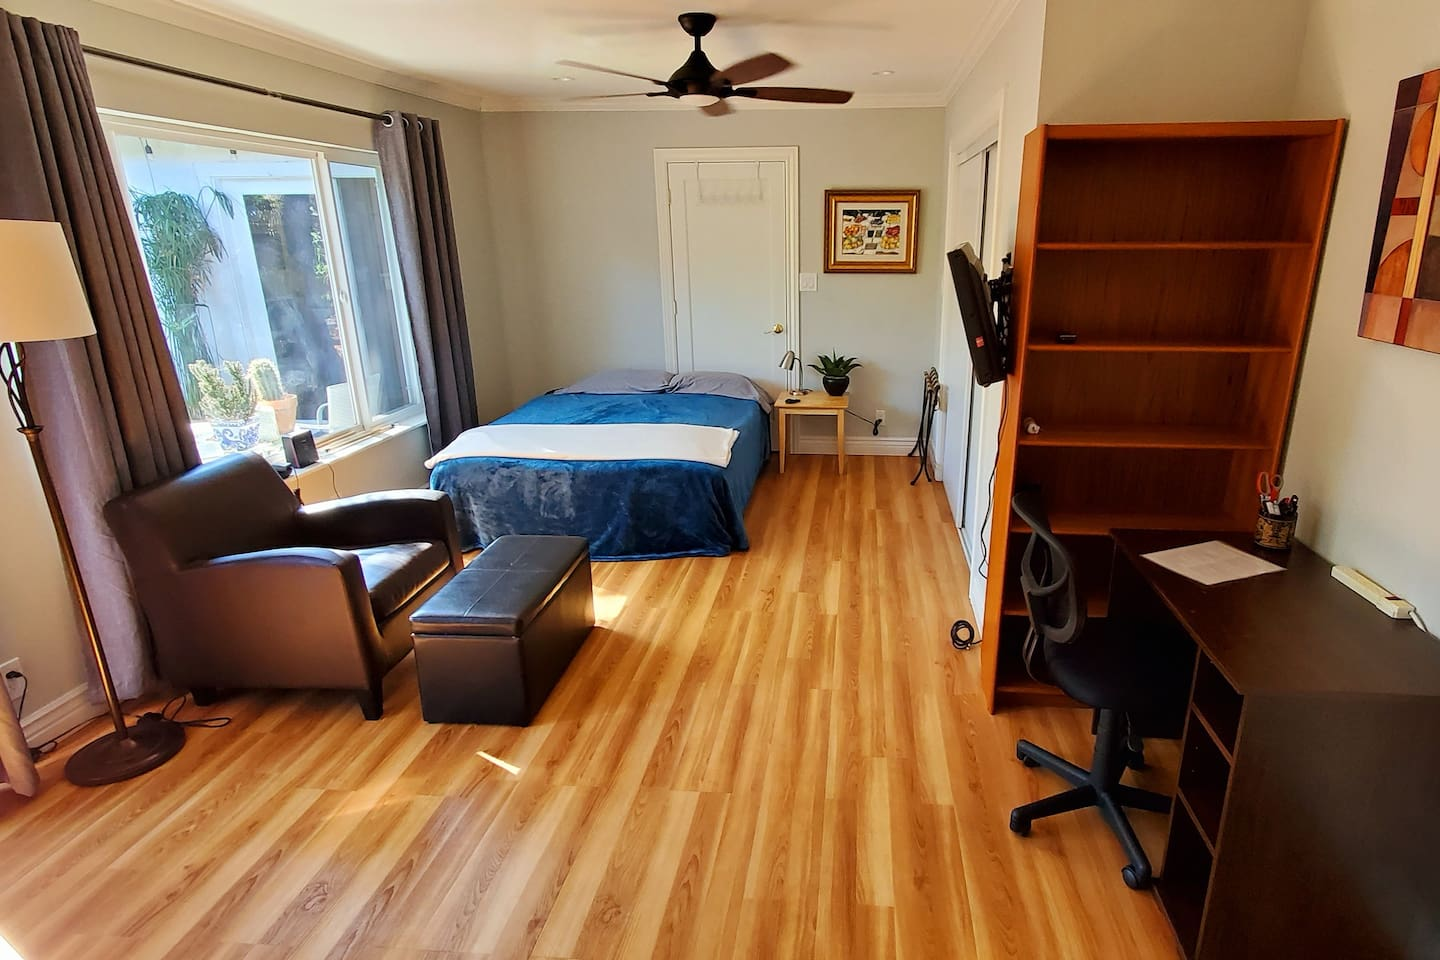 Full queen bed. We also have an extra folding cot for another person. Extra blankets, pillows, etc.   Double-bed, ceiling fan, Chromecast-enabled TV, music, luggage rack